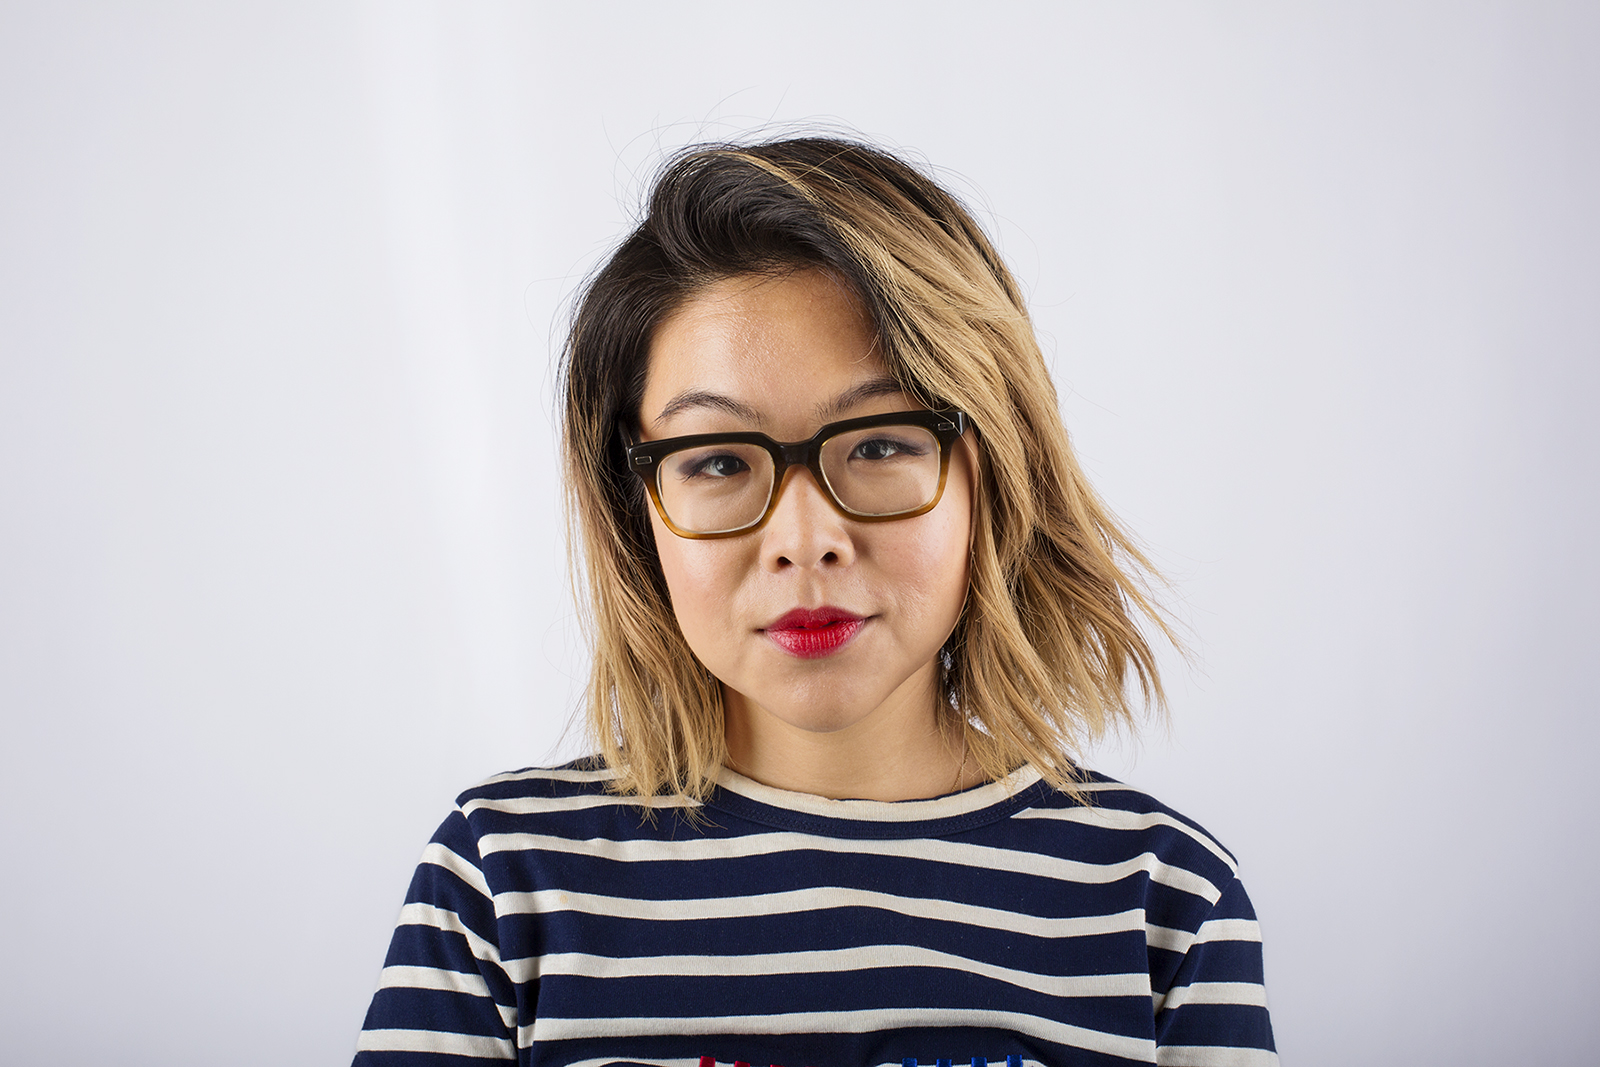 Girl with red lips and glasses